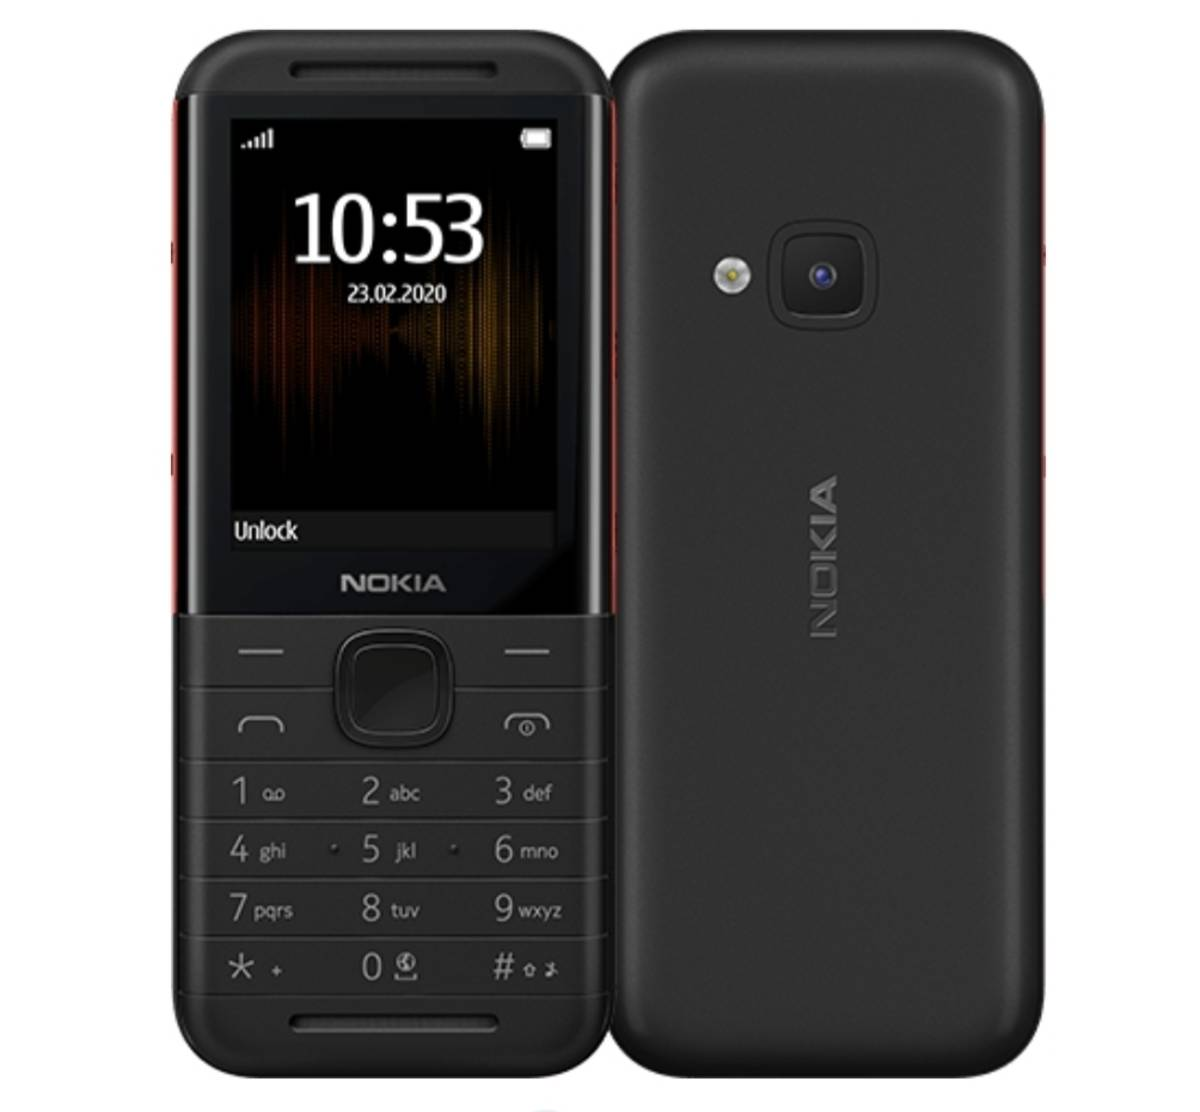 Nokia 5310 2020, Nokia 5310 2020 price in Nigeria, price of Nokia 5310 2020 in Nigeria, how much is Nokia 5310 2020 in Nigeria, best Nigeria price of Nokia 5310 2020, where to buy Nokia 5310 2020 in Nigeria, Nokia 5310, Nokia 5310 price in Nigeria, 5310 Nokia price 2020, Nokia 5310 2020 specs, Nokia 5310, Nokia 5310 2020 specs and price in Nigeria, Nigerian best price of Nokia 5310 2020